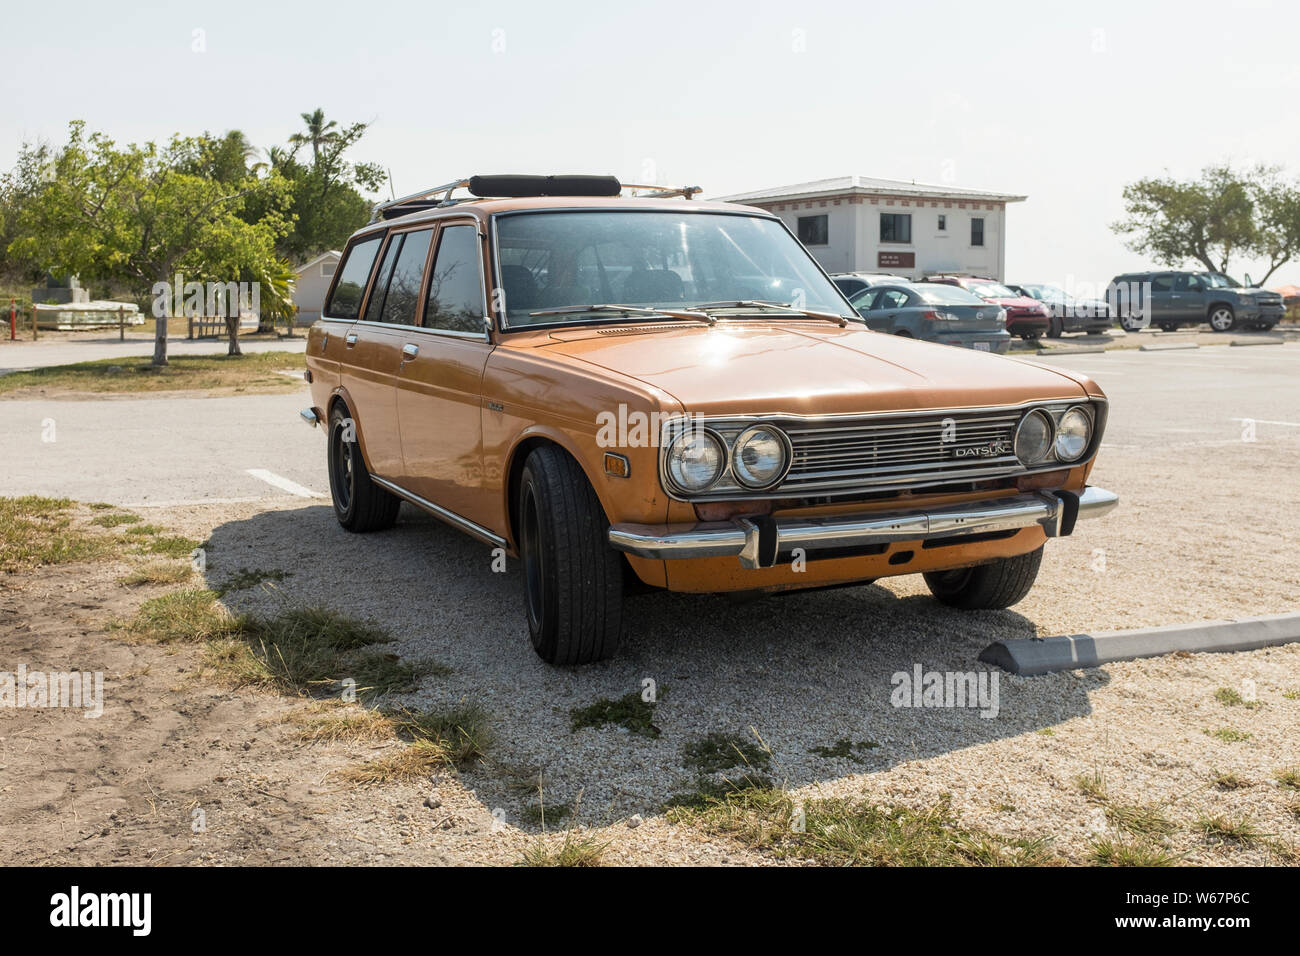 Old Datsun Stock Photos & Old Datsun Stock Images - Alamy